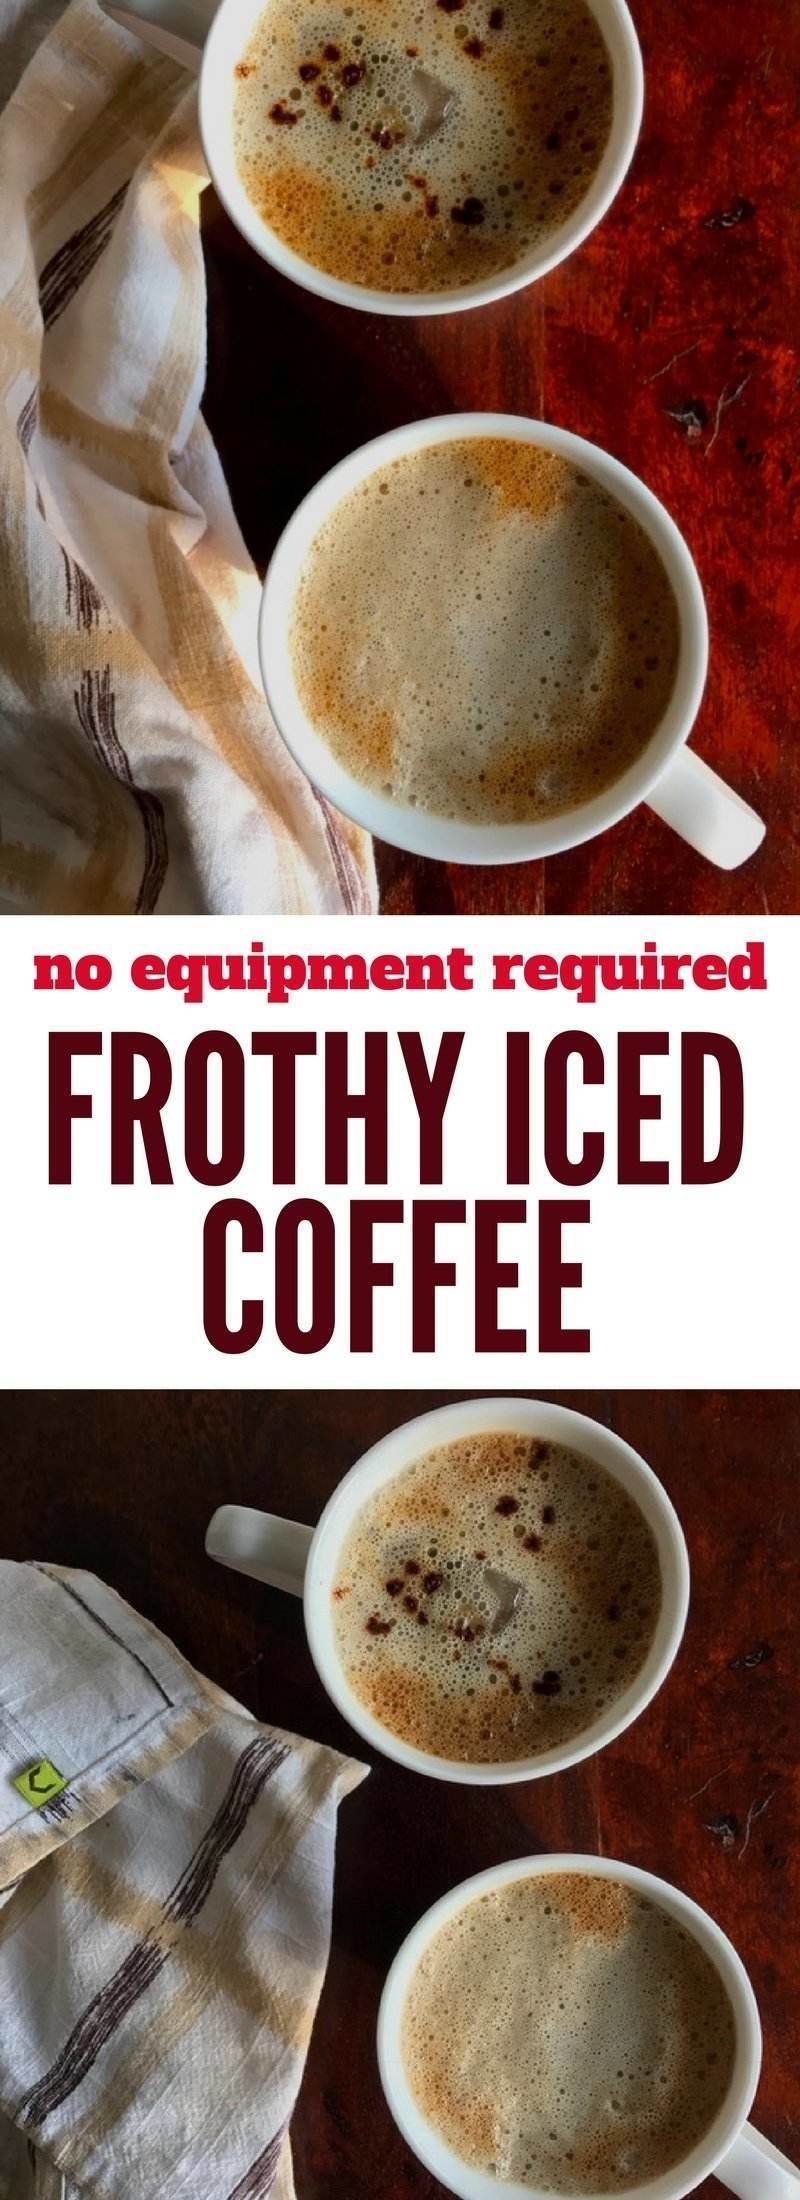 Frothy Iced Coffee No Equipment Required Recipe